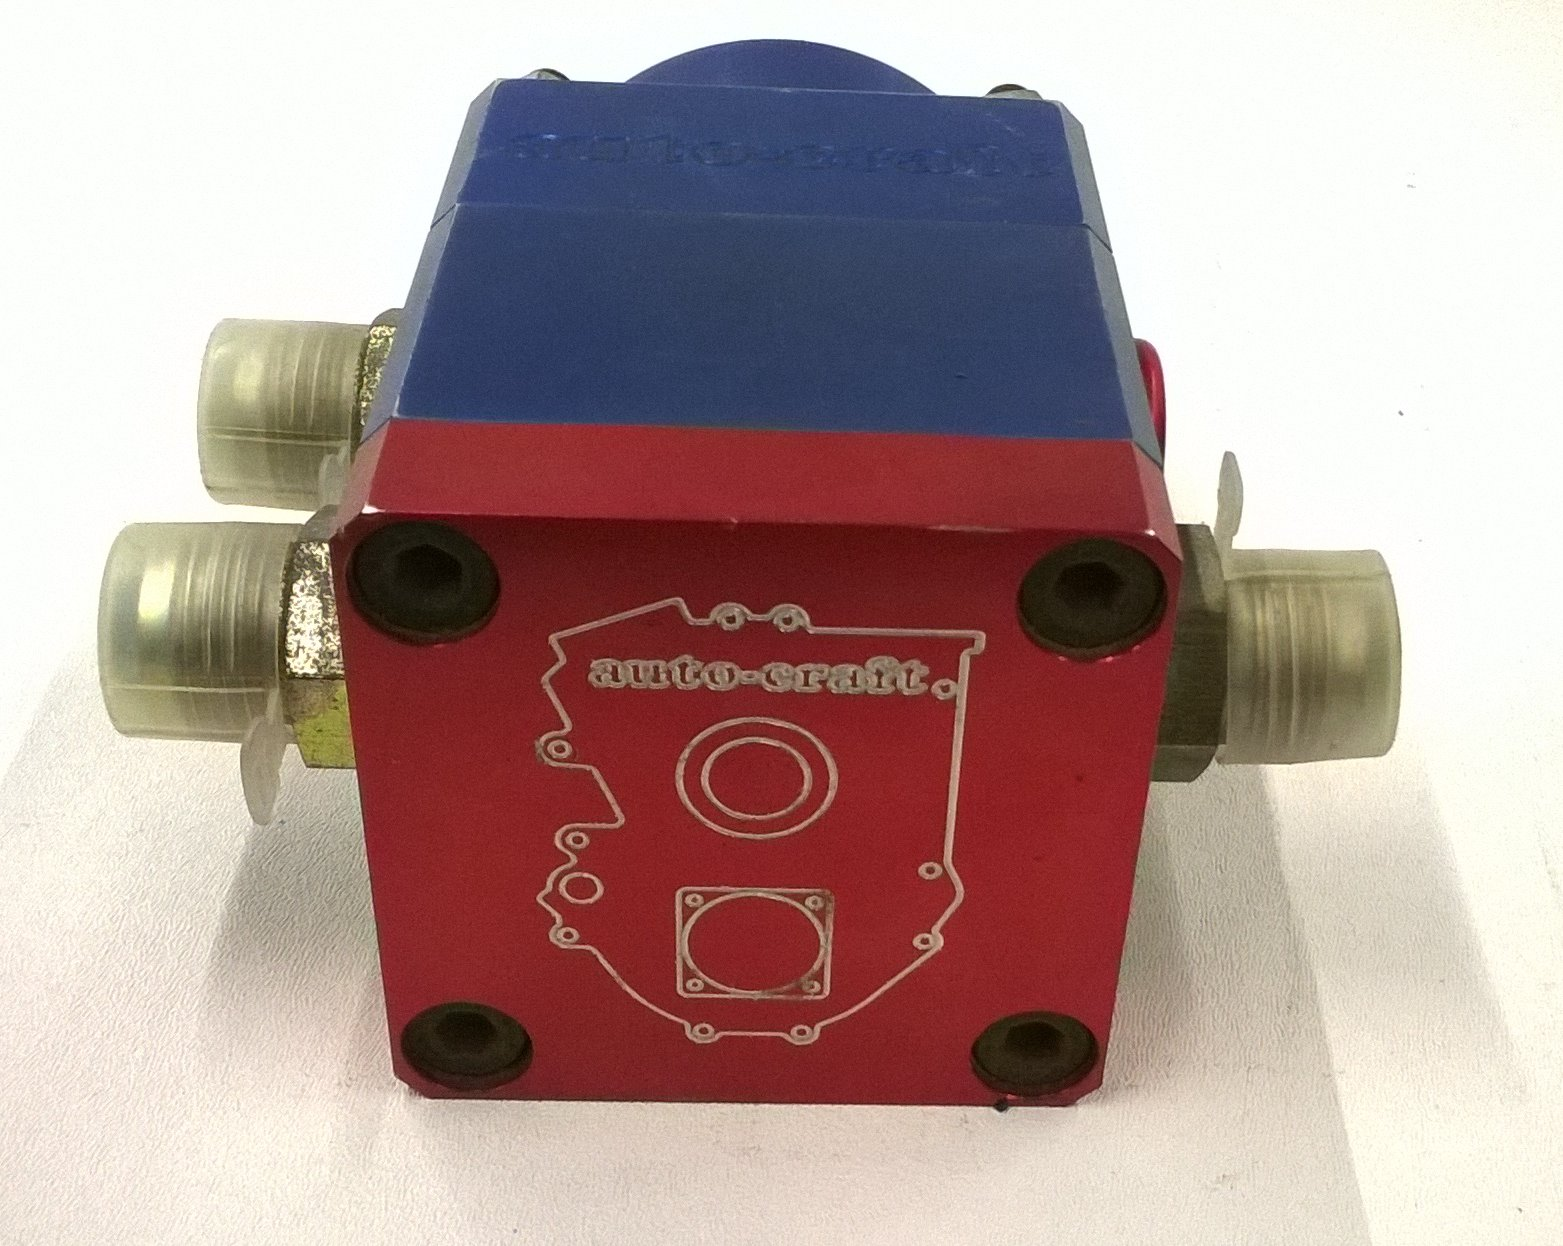 AUTOCRAFT 2 stage dry sump oil pump (New)